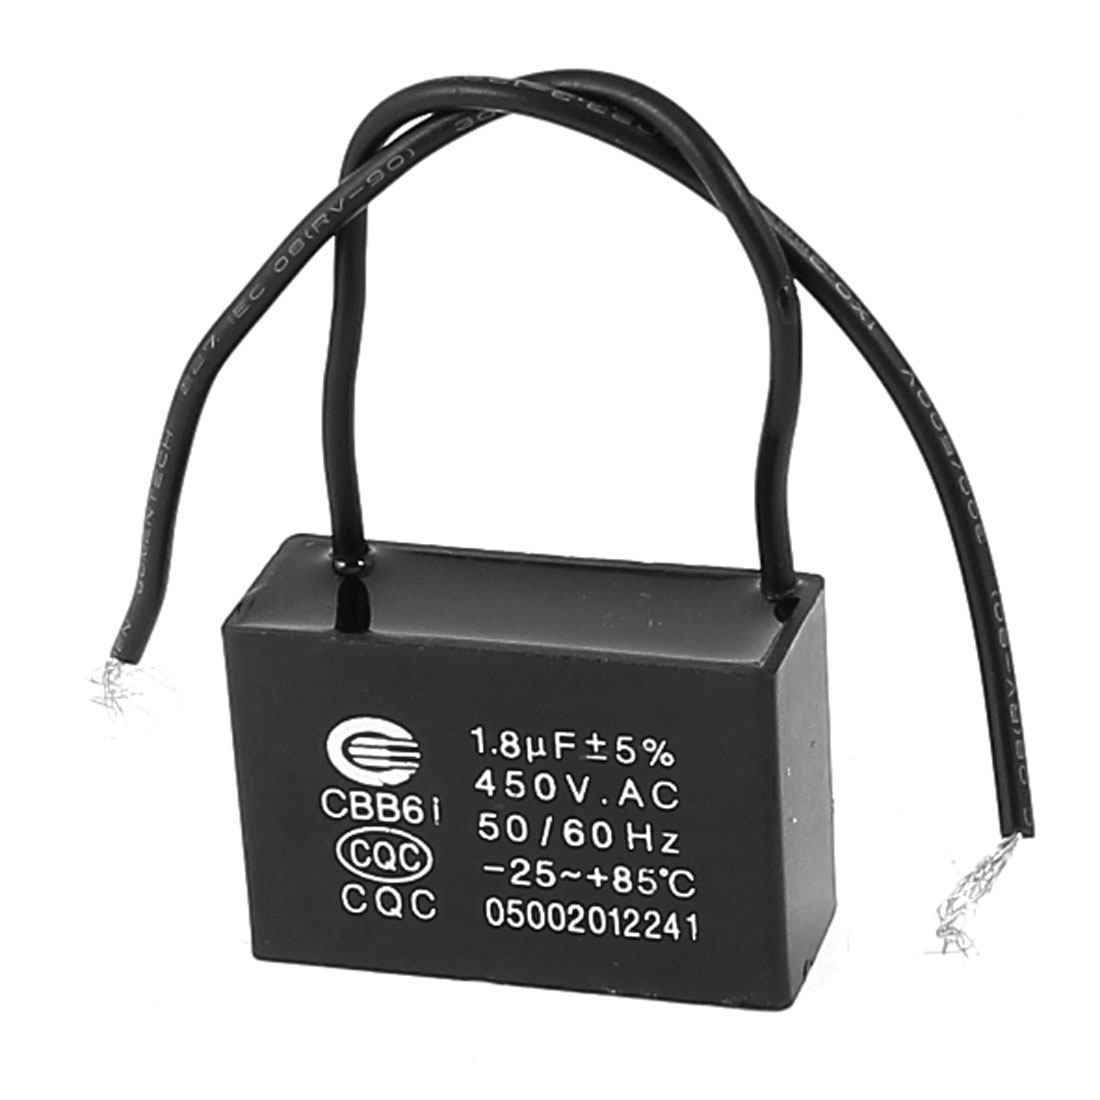 Polypropylene Film Wired Motor Run Capacitor AC 450V 1.8uF CBB61 Black